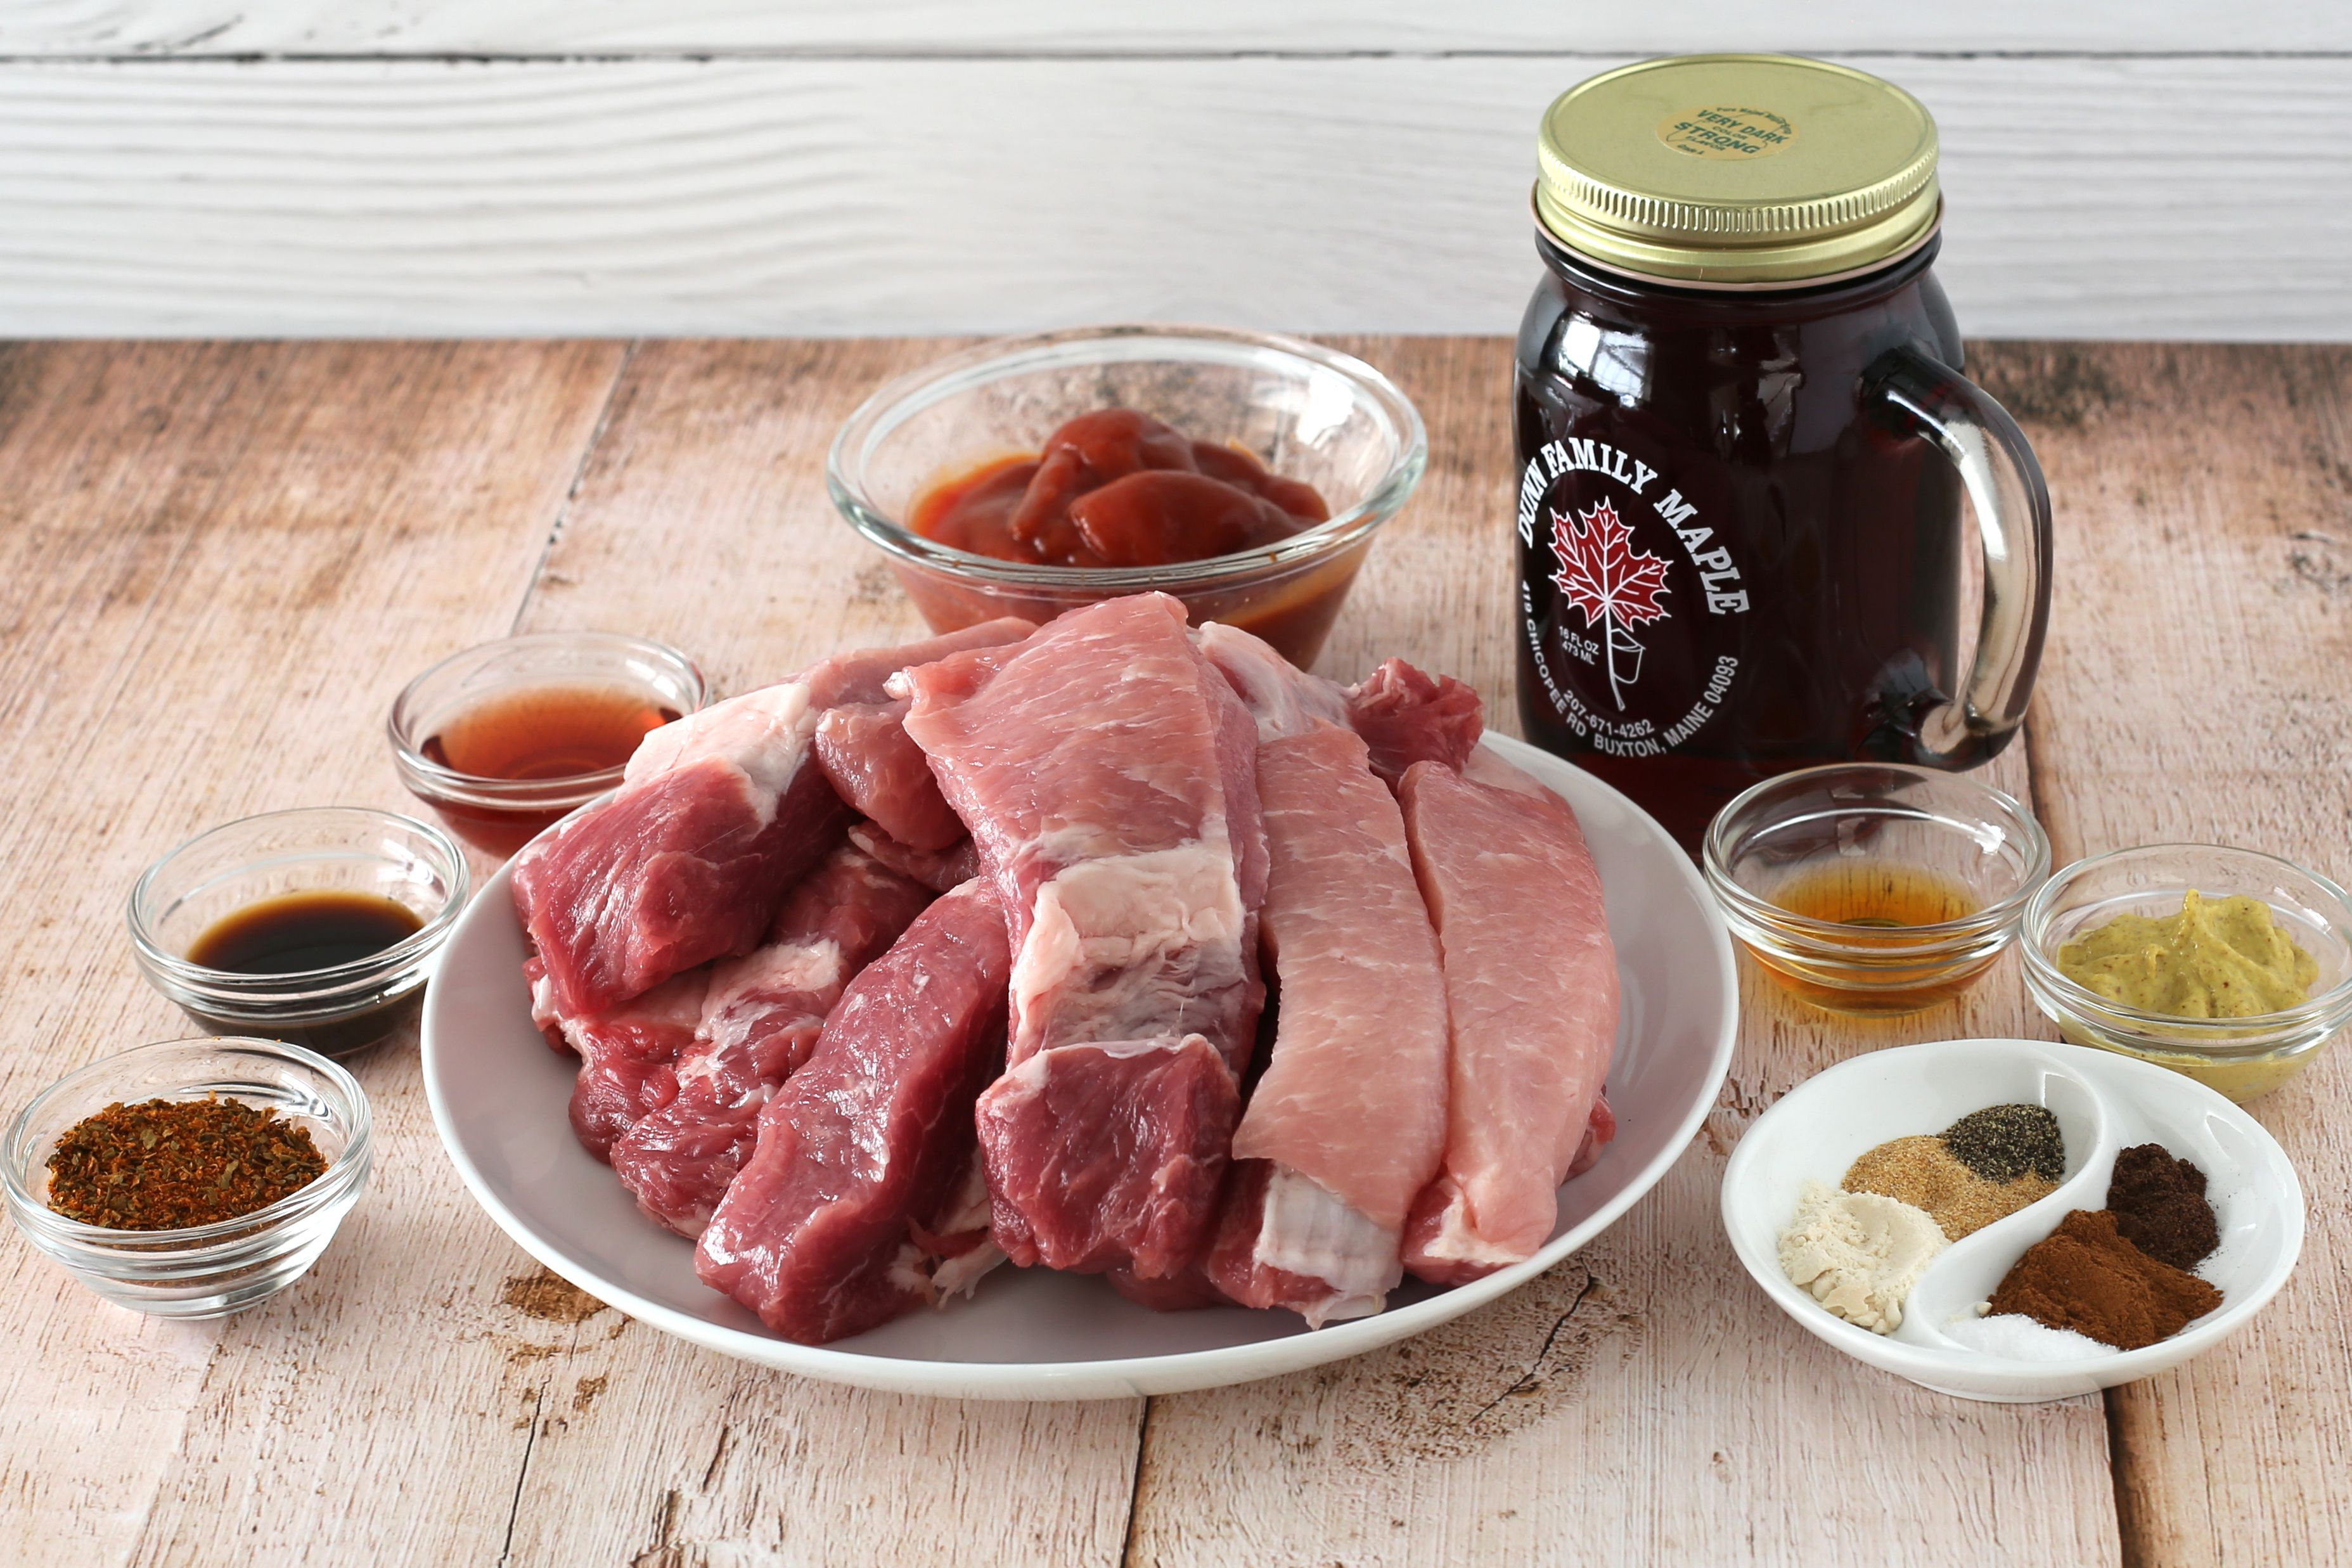 Ingredients for making baked country-style ribs